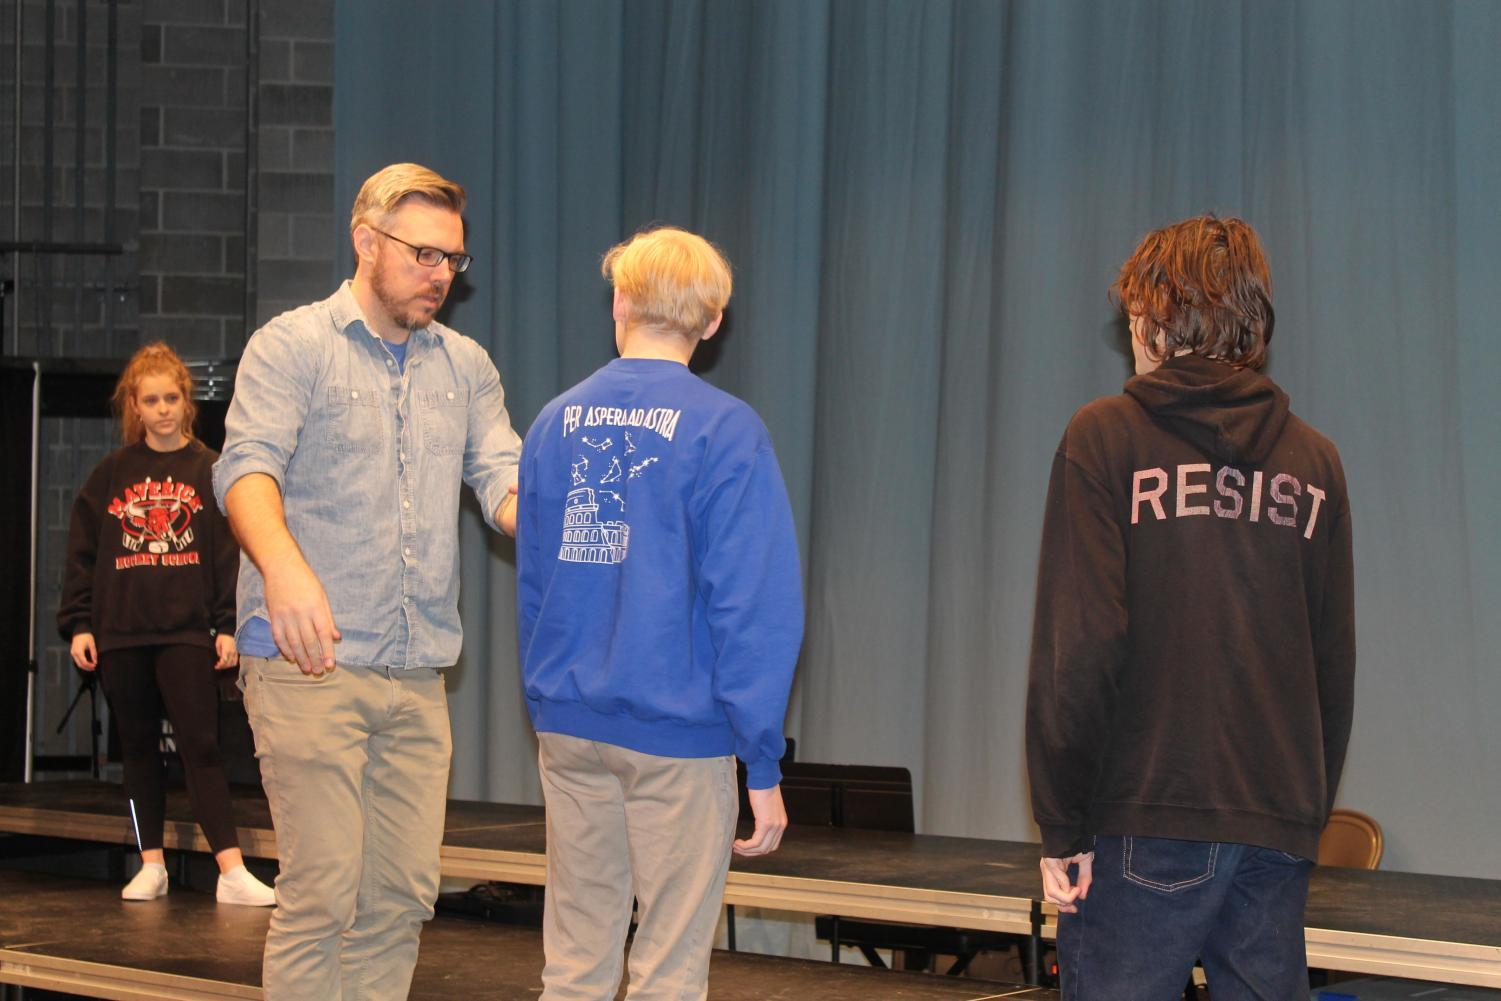 Theater+director+Jeremy+Stoll+leads+students+in+simple+physical+theater